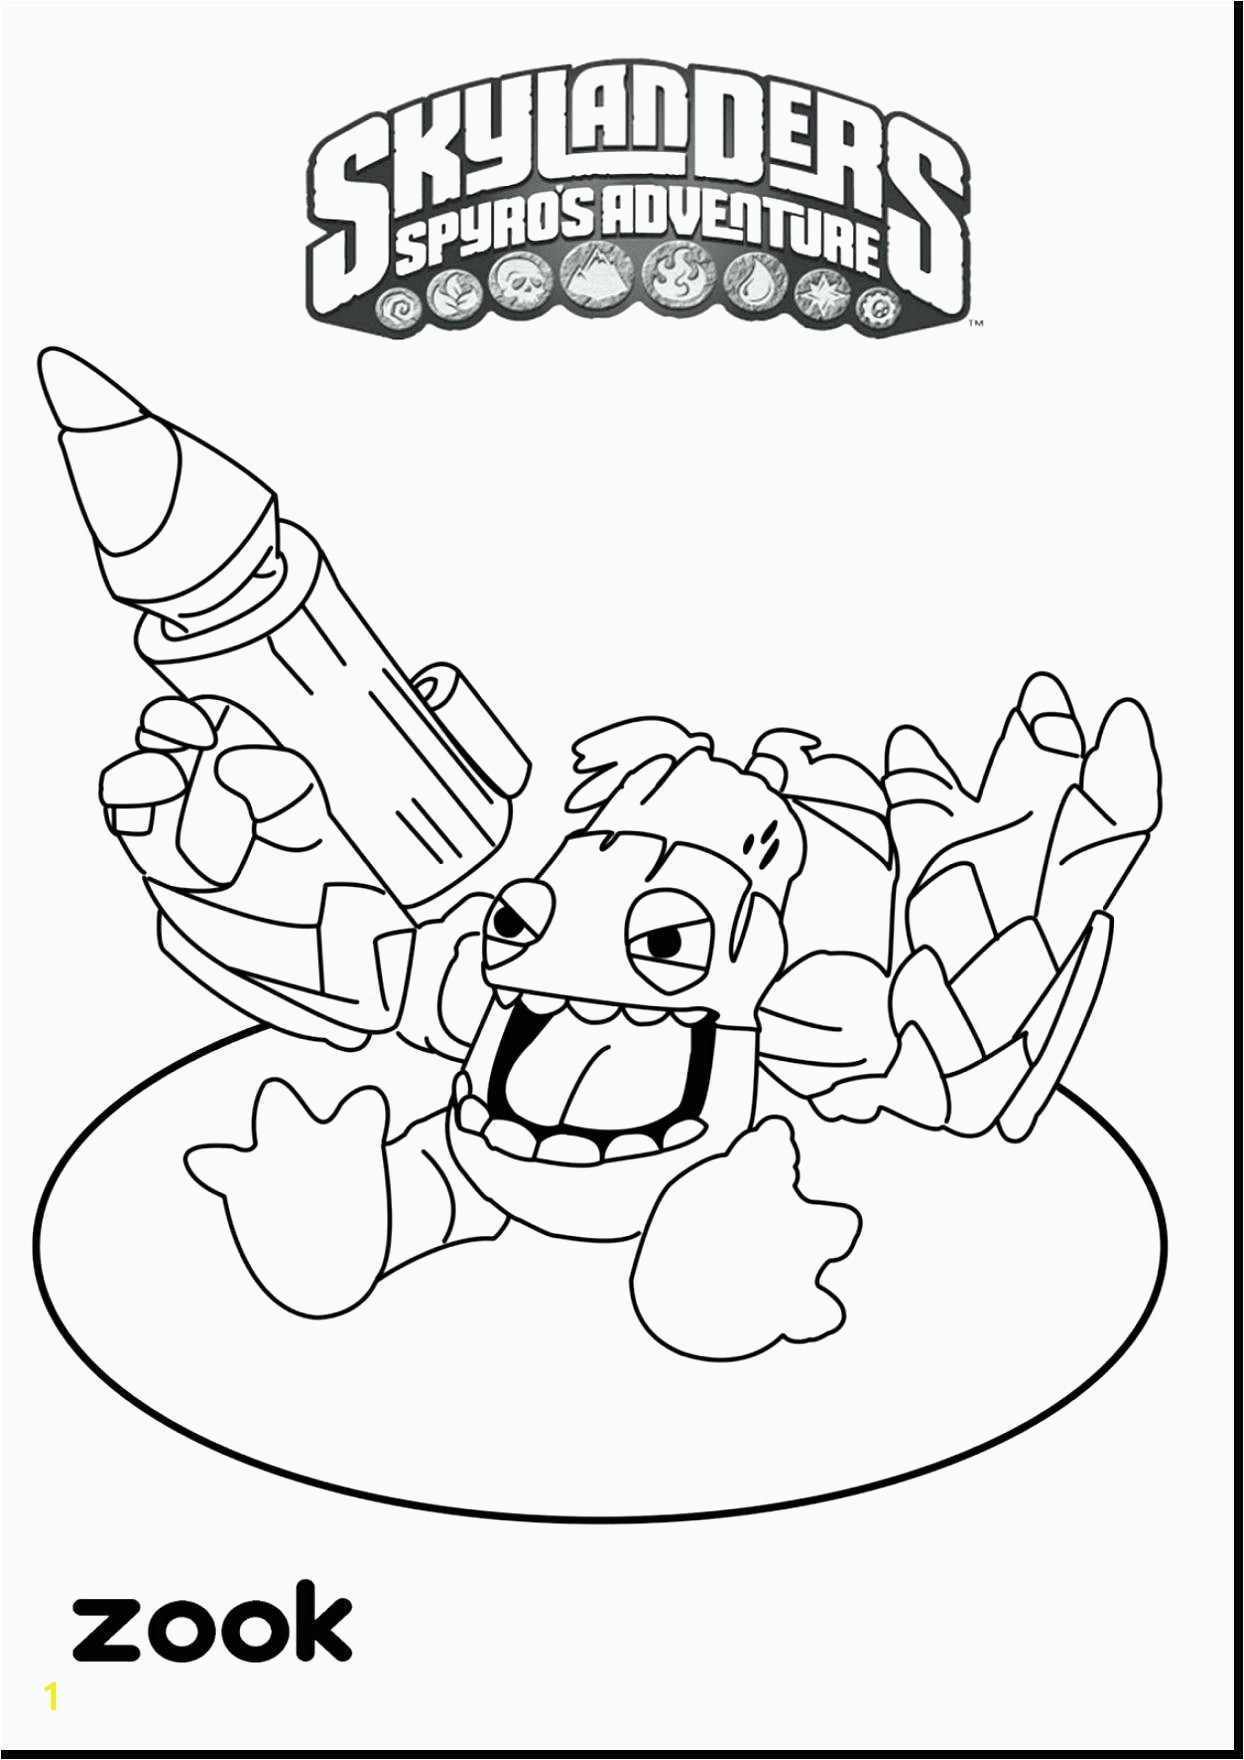 Letter E Coloring Page Fresh Coloring Pages Letter E Coloring Page Luxury 26 Best Monster